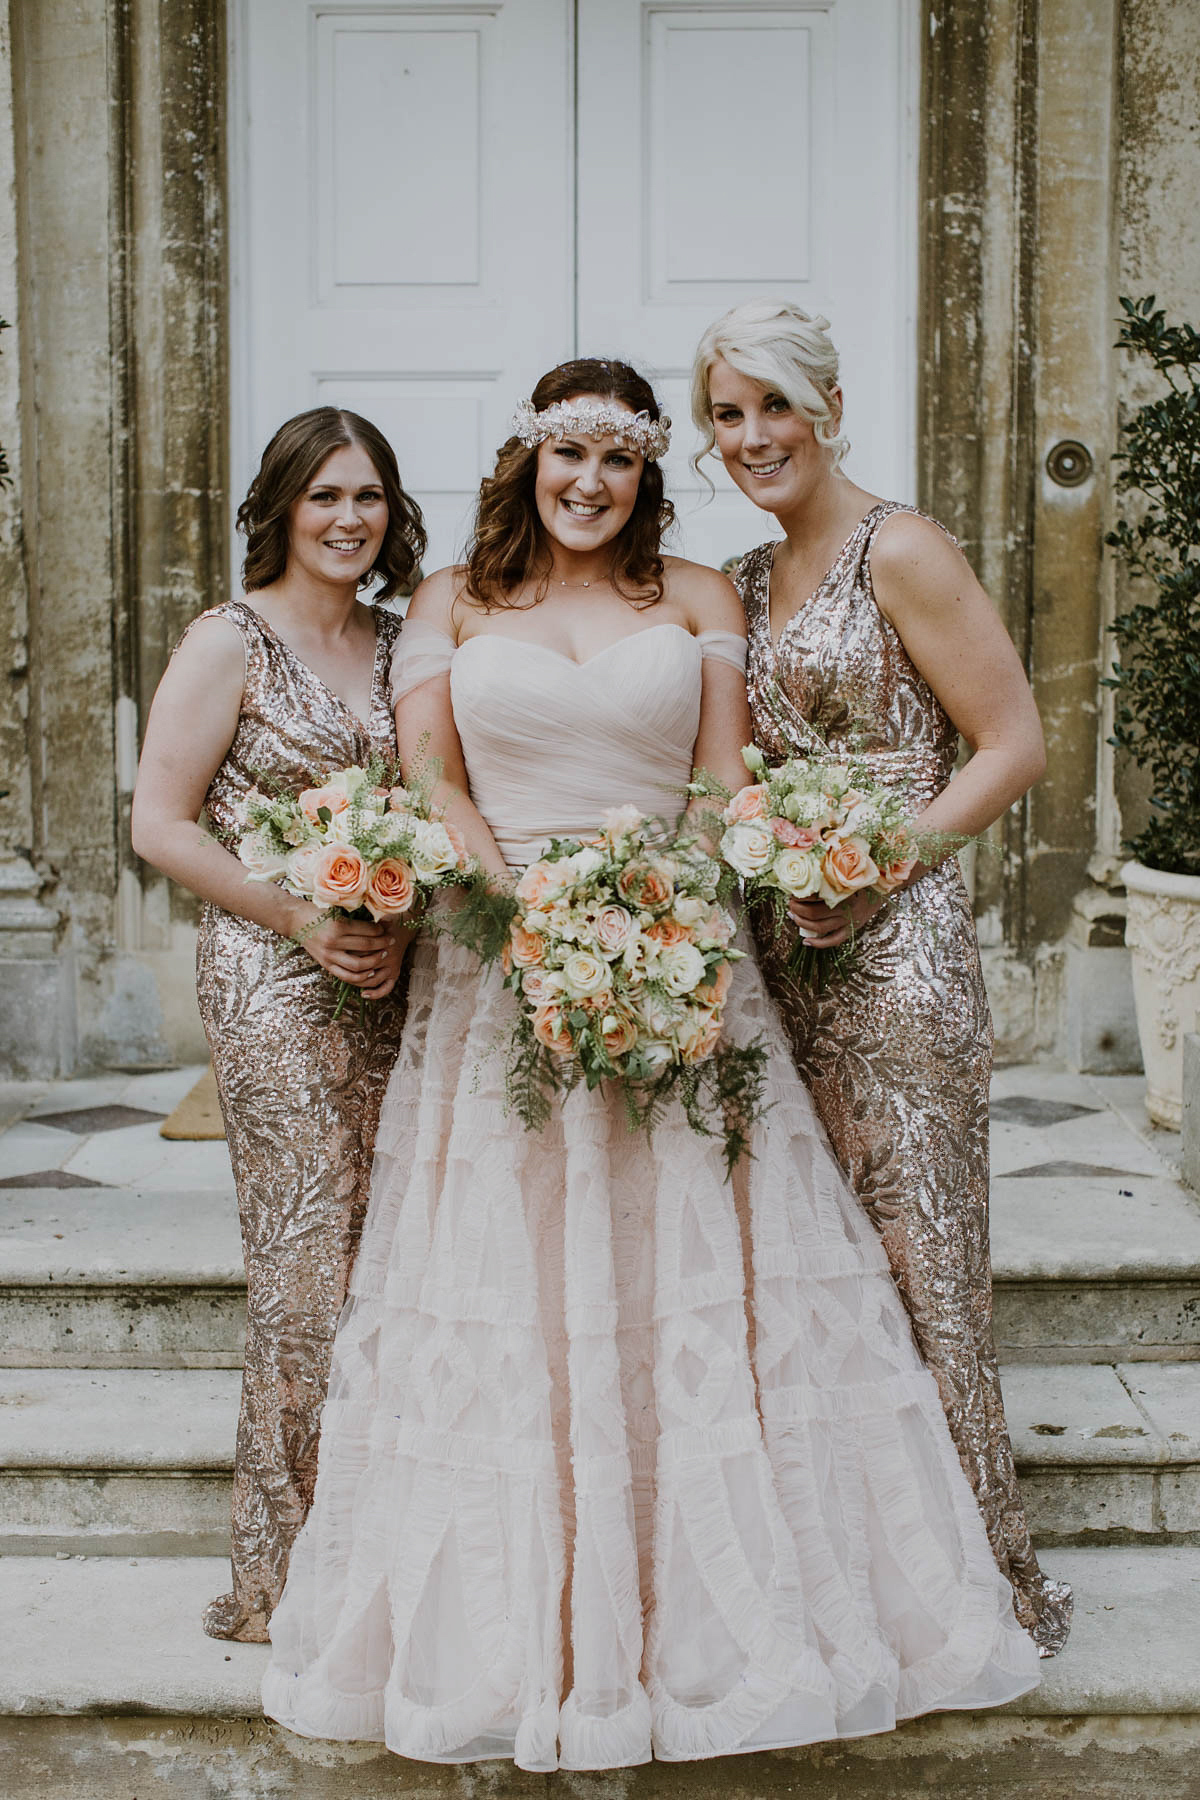 A Blush Pink Watters Wedding Dress and Laid Back Glamour (Weddings )